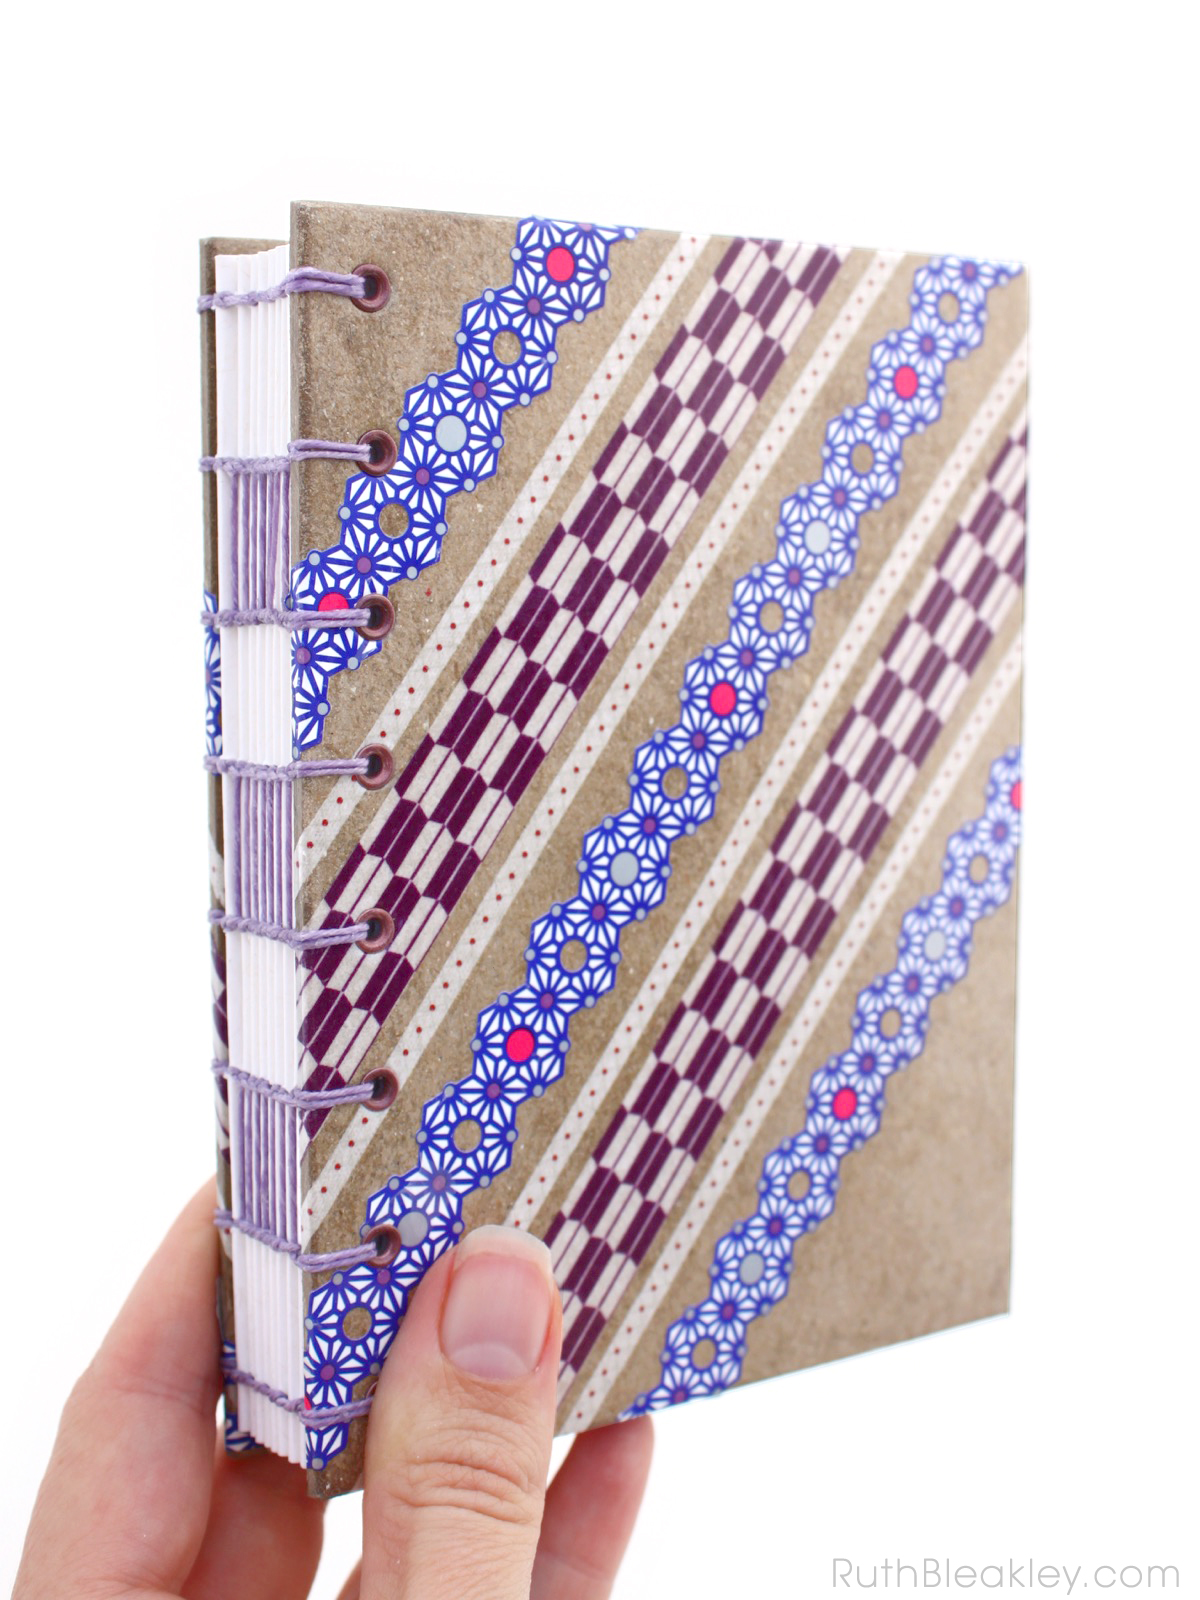 Purple and Blue Lace Washi Tape Journal handmade by Ruth Bleakley - 1